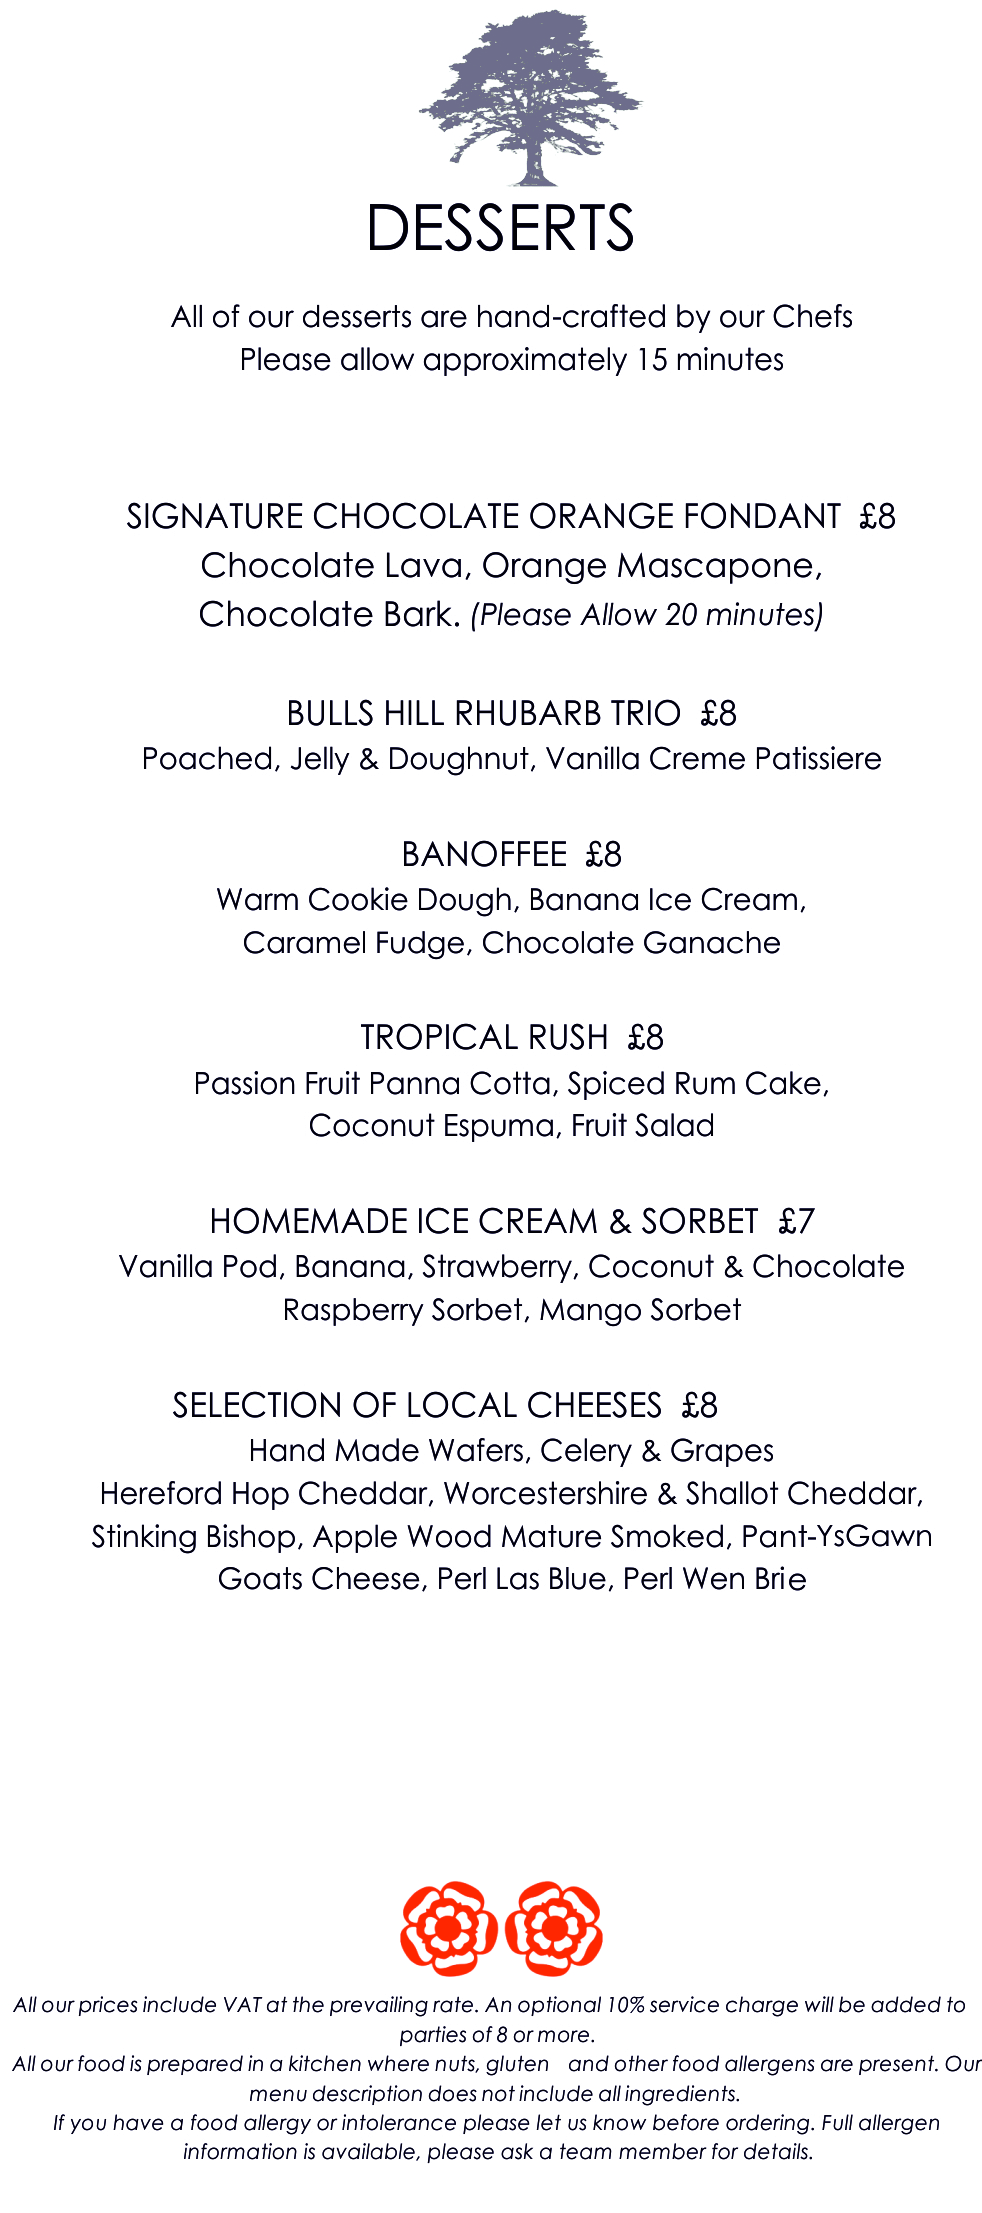 Glewstone Court Country House Hotel in Ross on Wye Menu P2